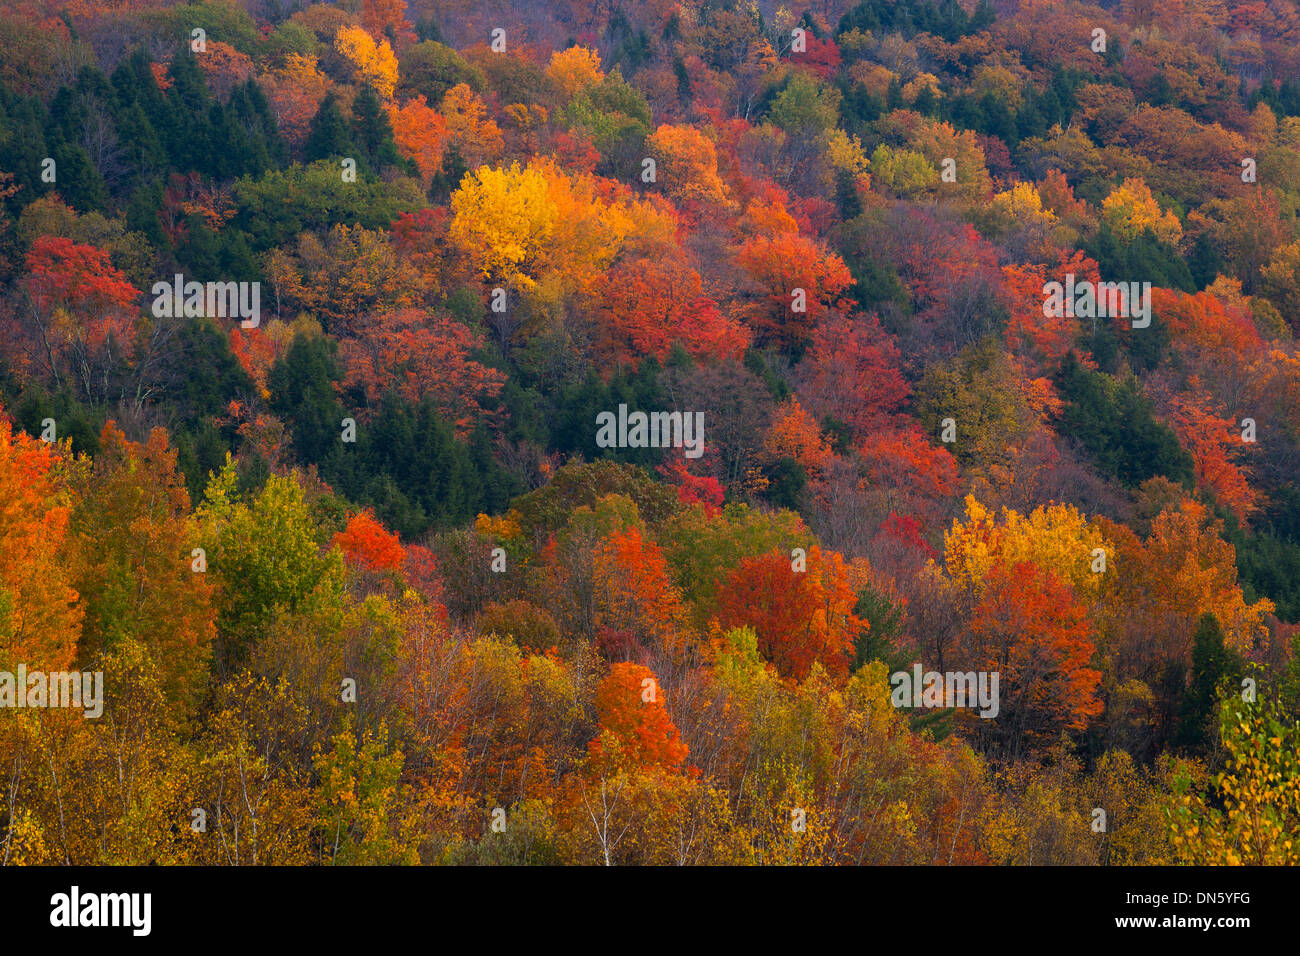 Forest in autumn, Eastern Townships, Quebec, Canada - Stock Image